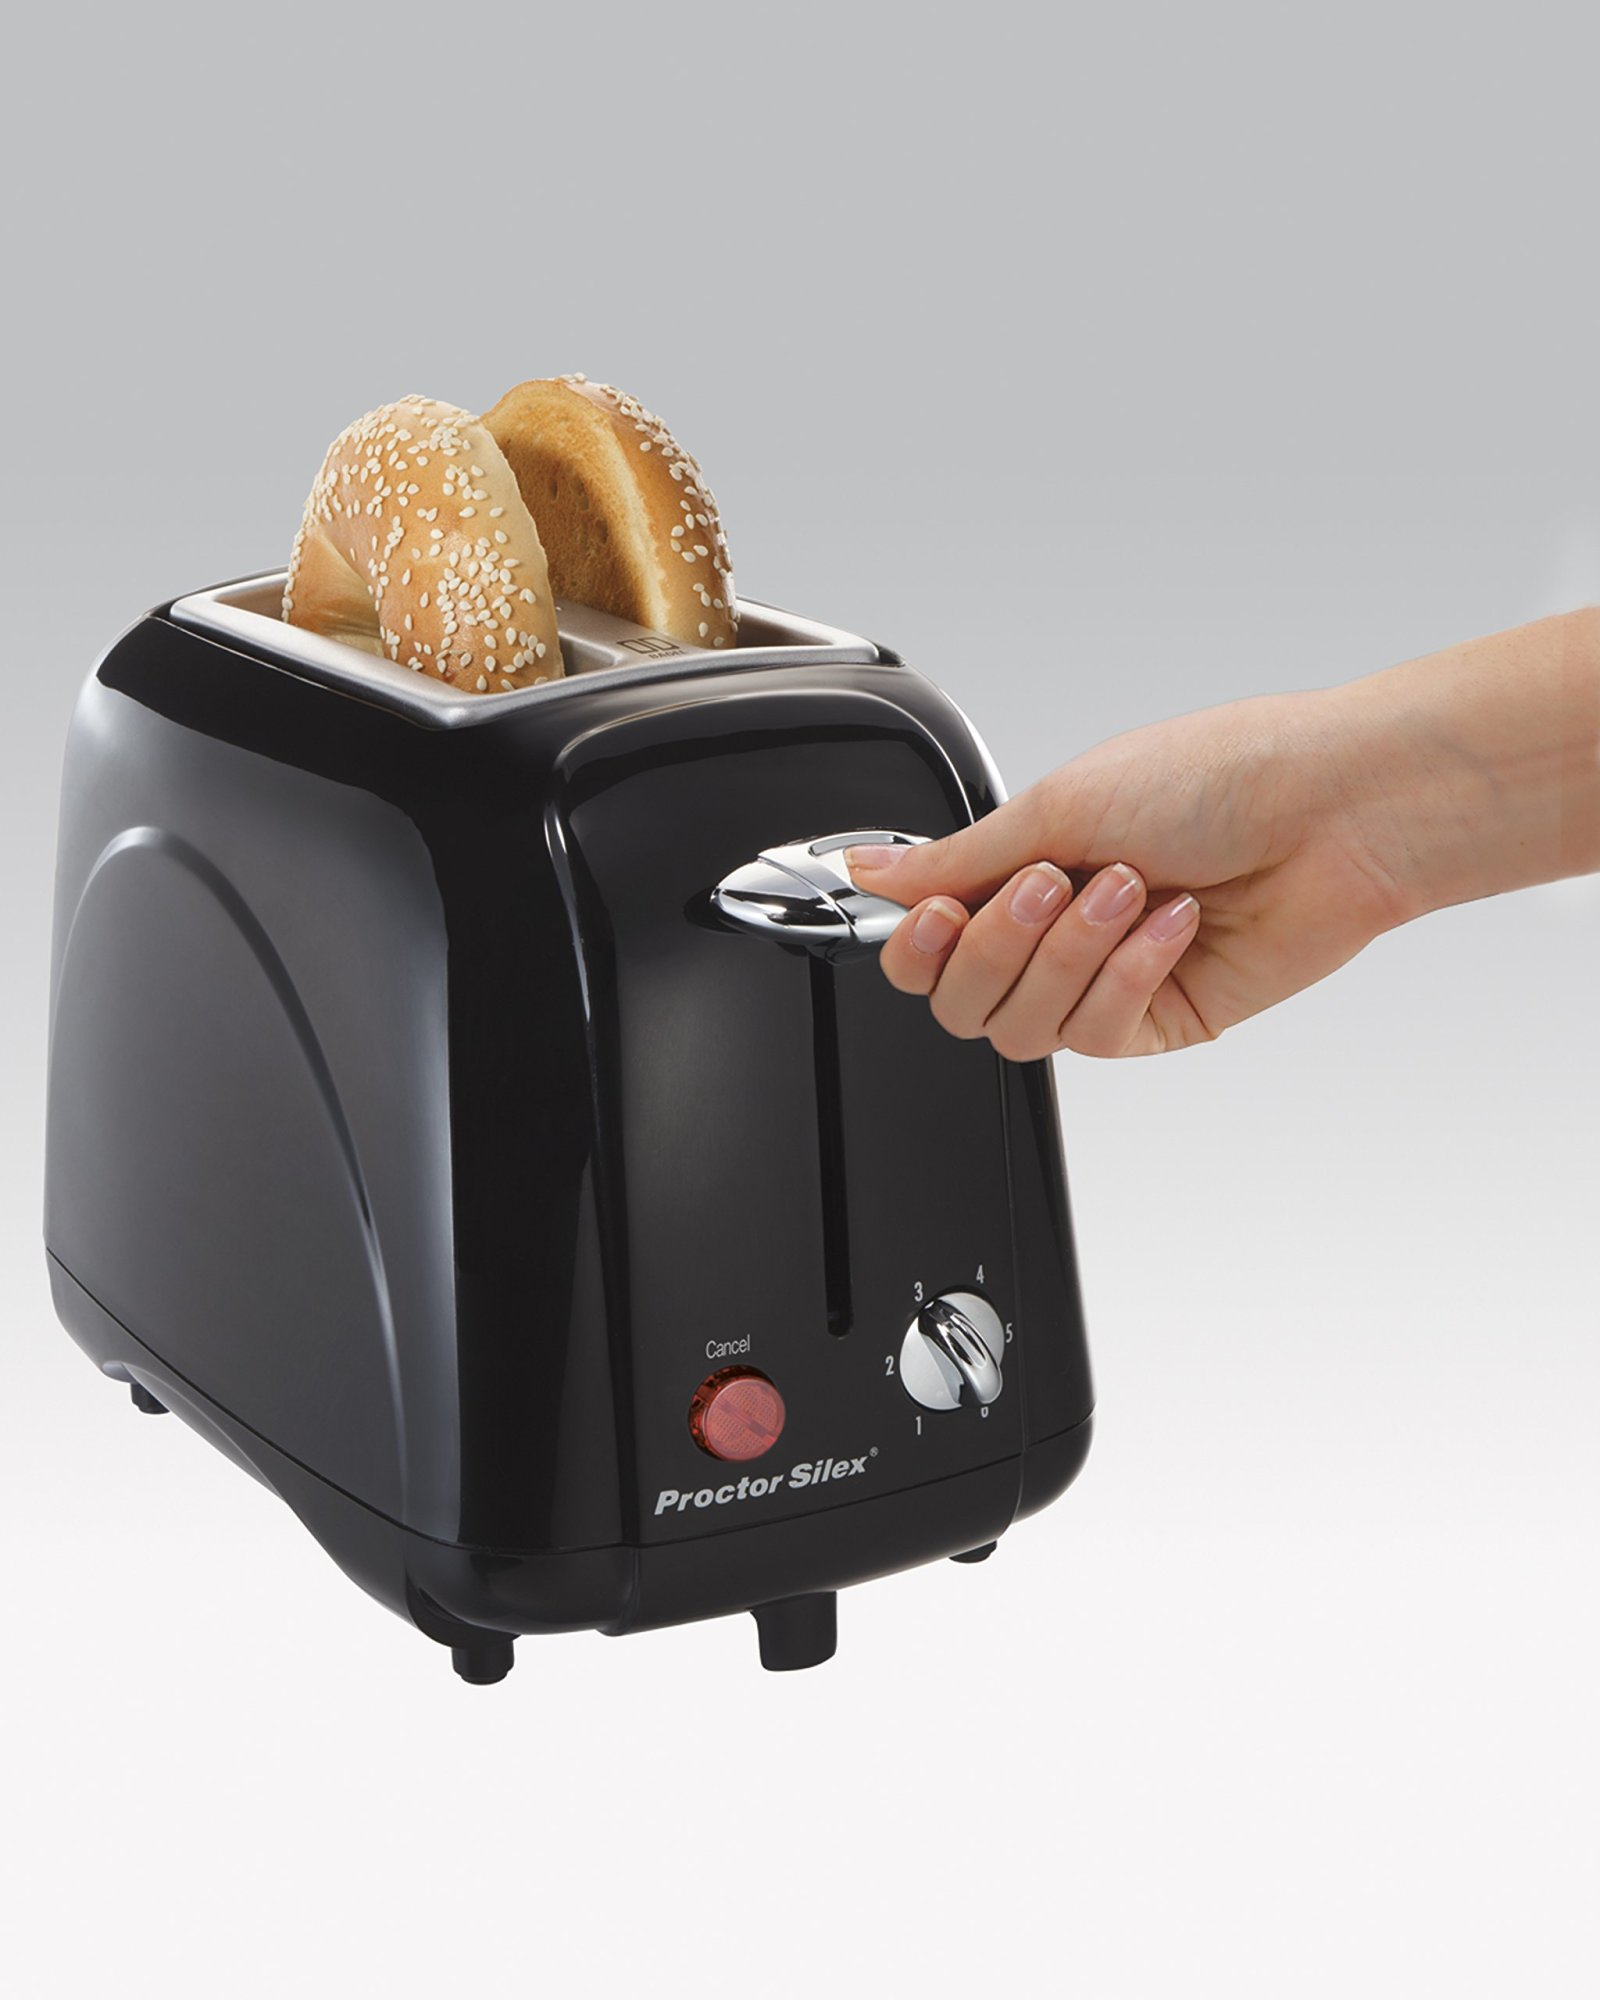 Extra Wide Slot Toaster 2 Slice Small Appliances Ovens Toasters